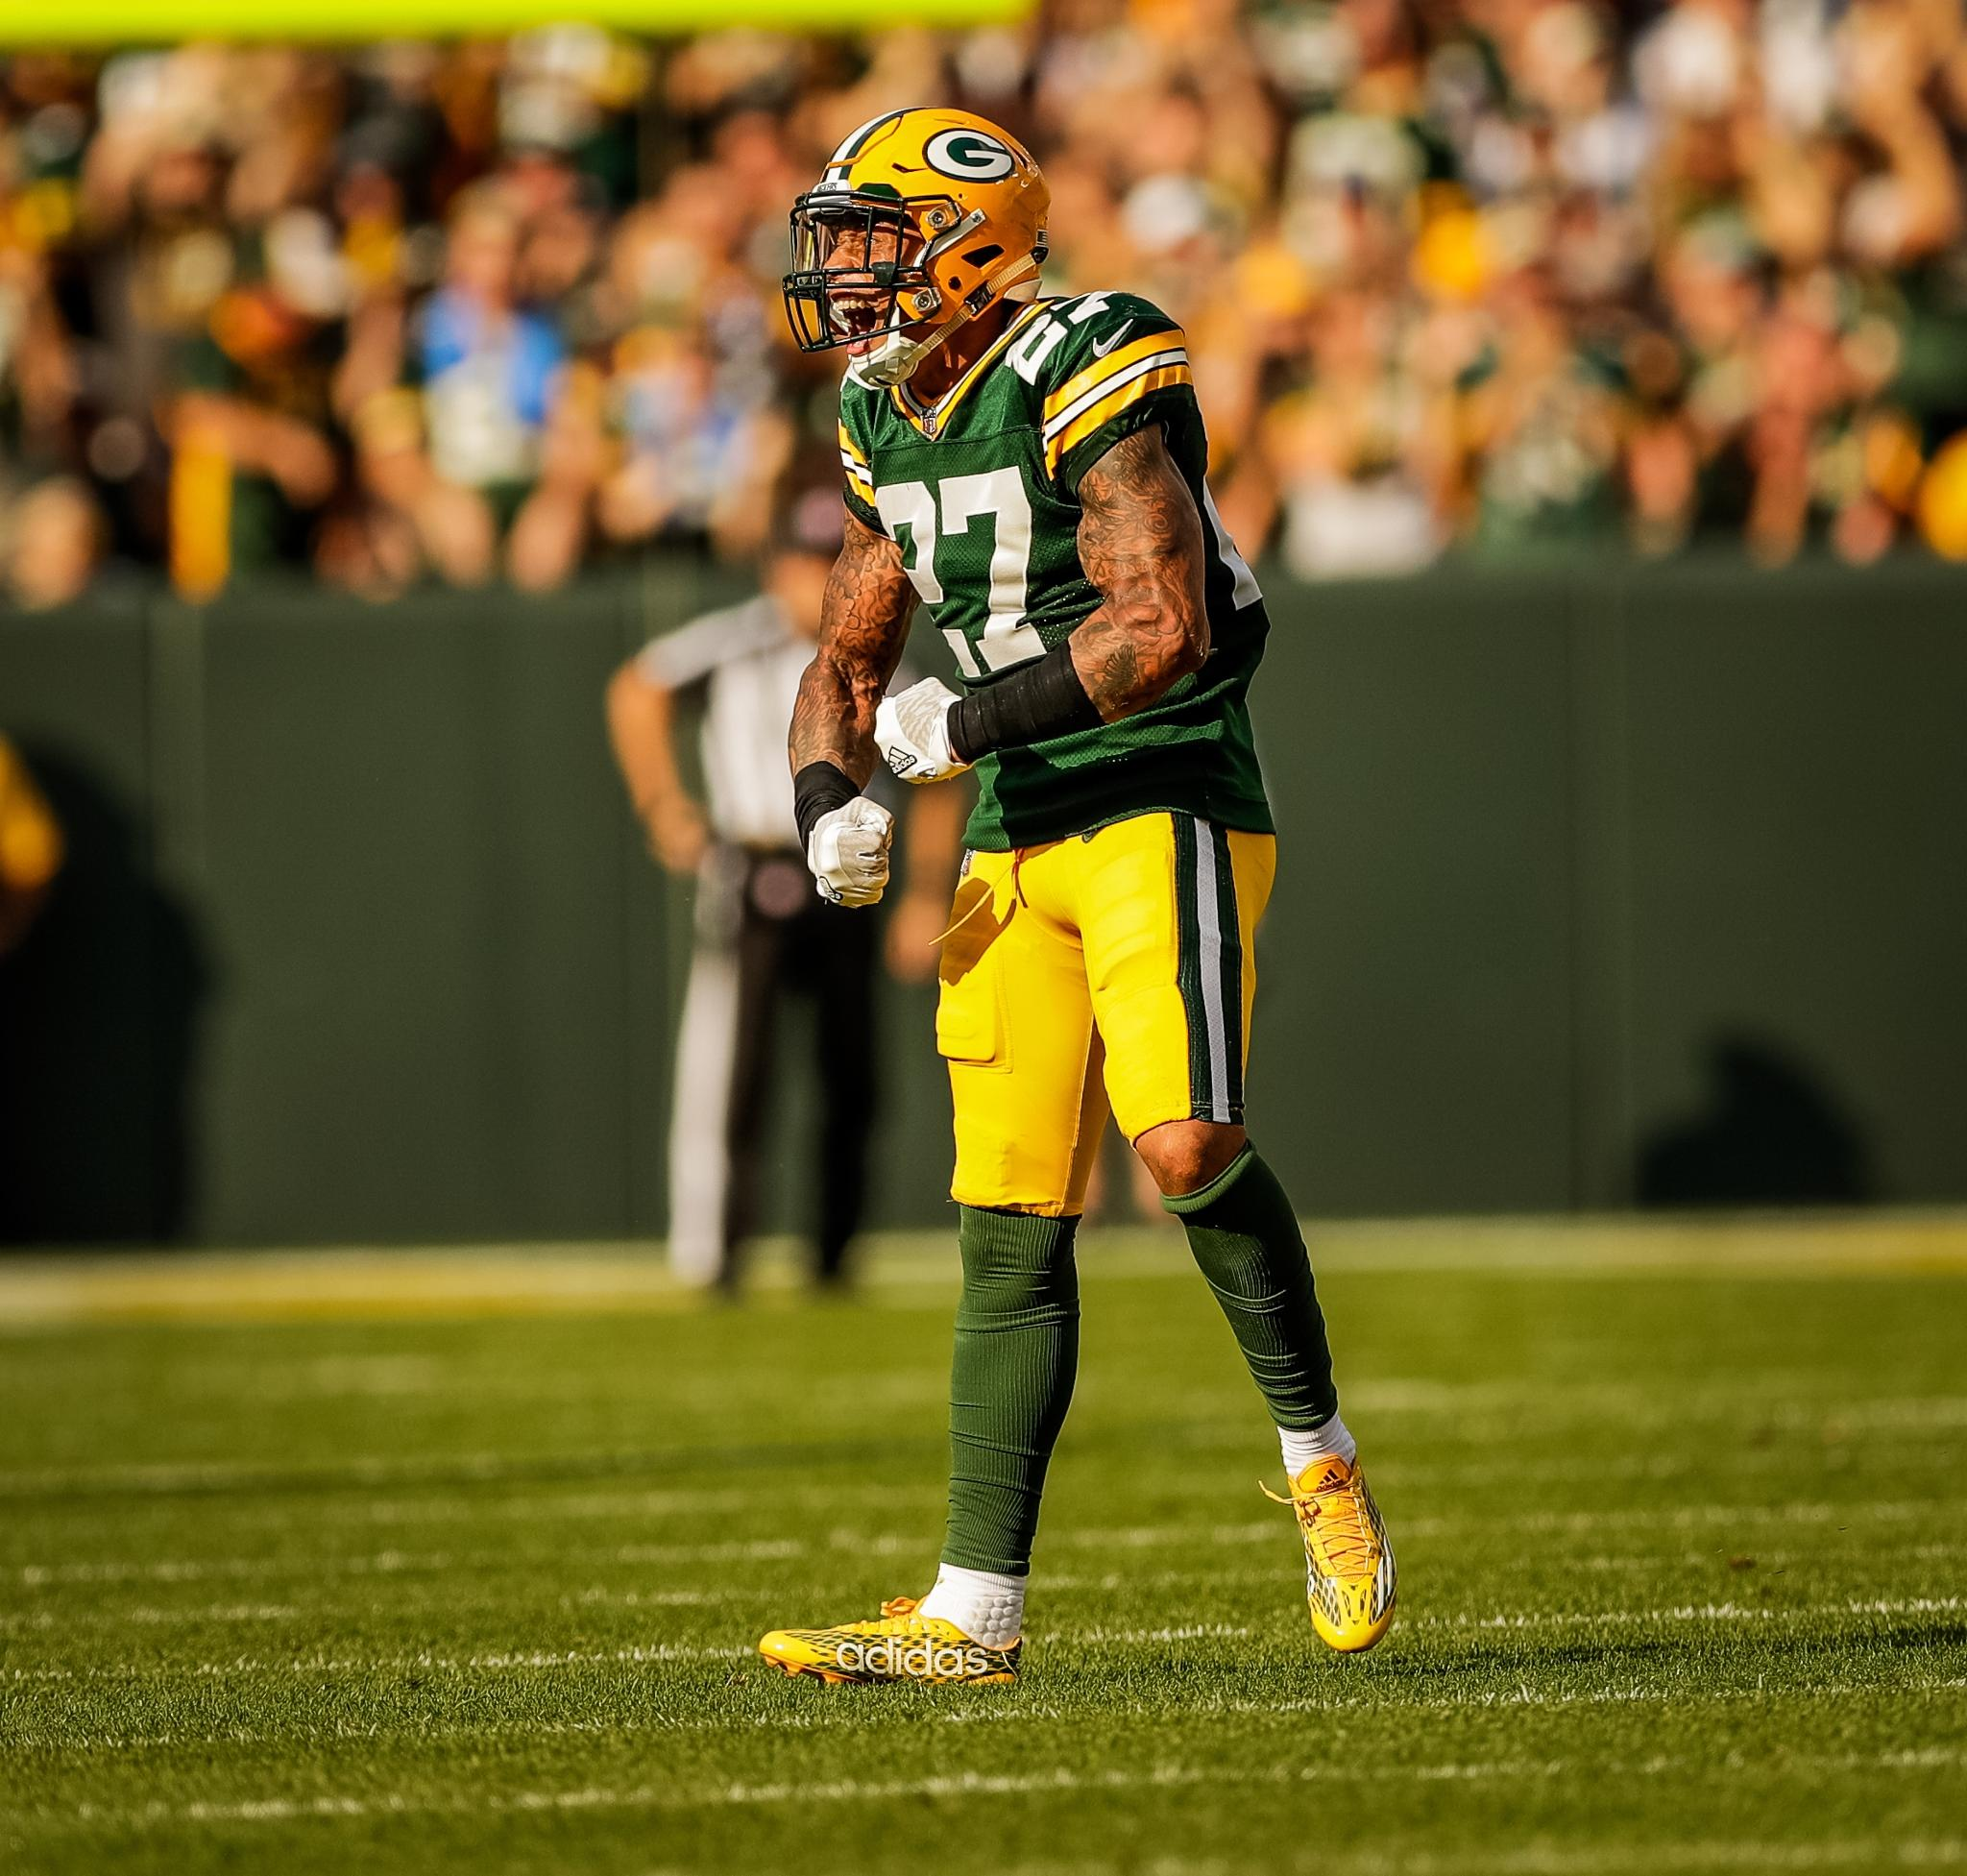 Take a look at #Packers S @JoshJones11_'s top photos from his rookie 2017 season.   ��: https://t.co/MQLXcN5knt https://t.co/YrCVjW08cr